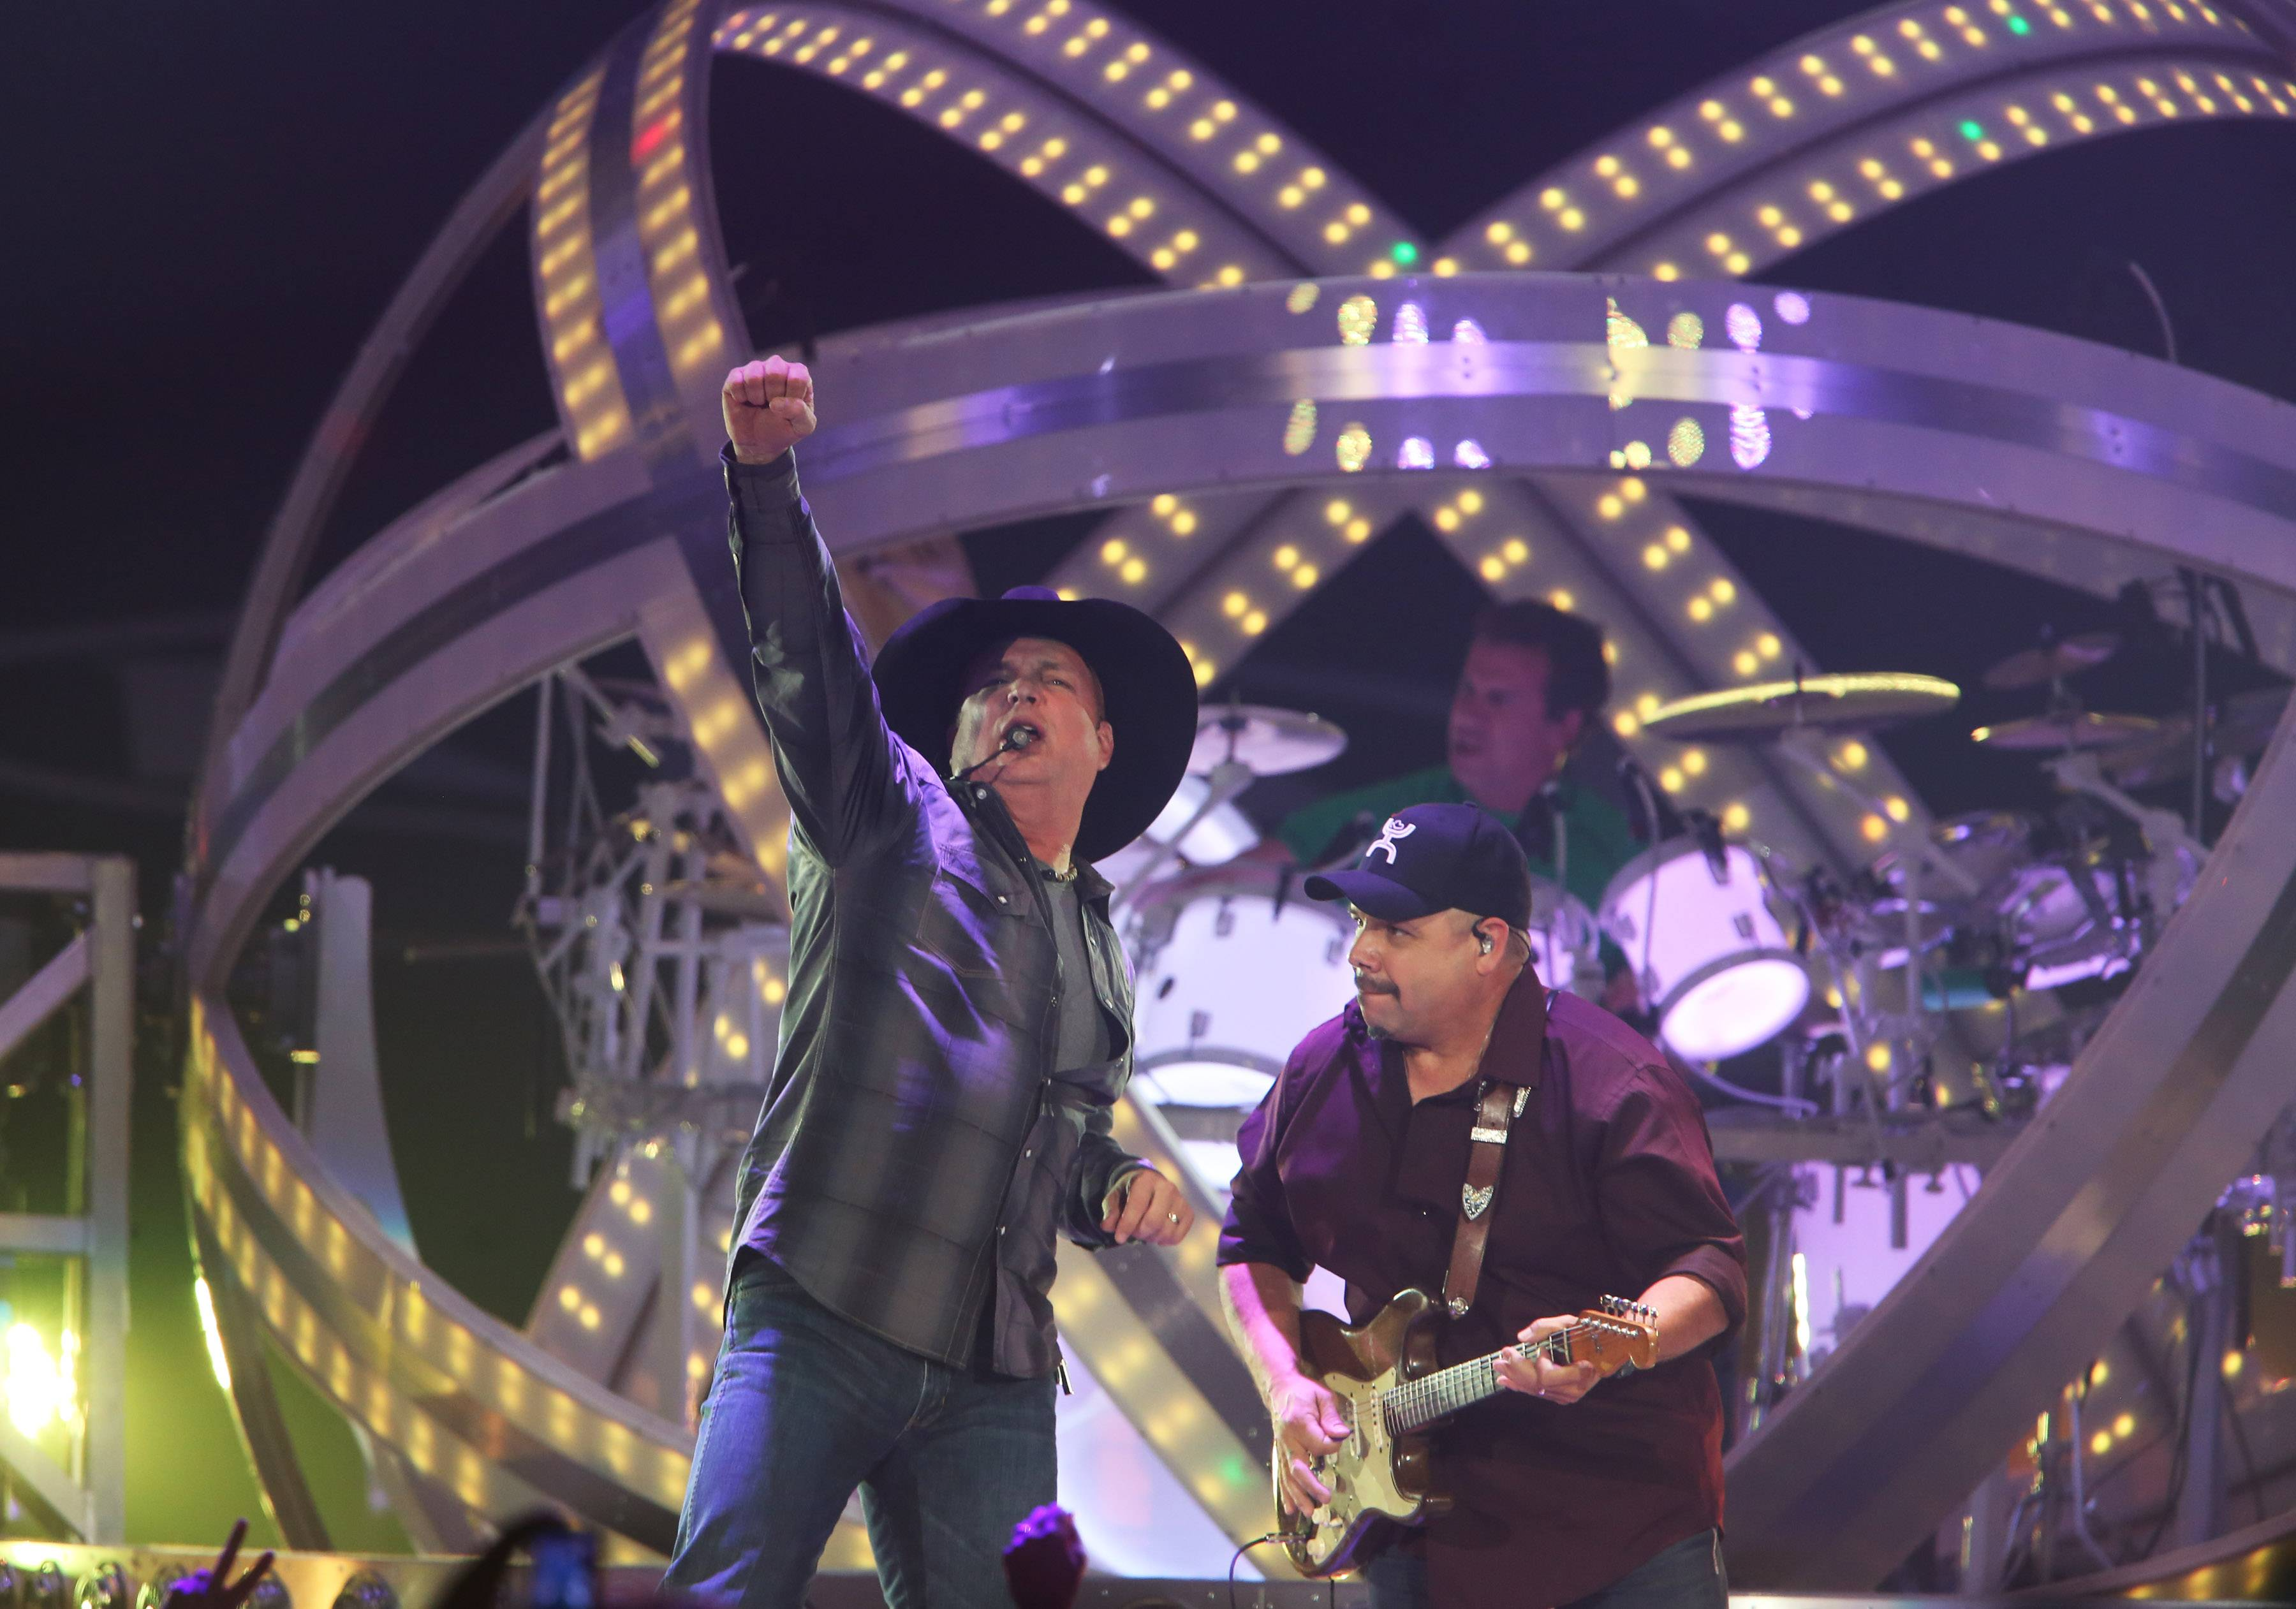 Country music star Garth Brooks performs at Allstate Arena on Thursday in Rosemont.